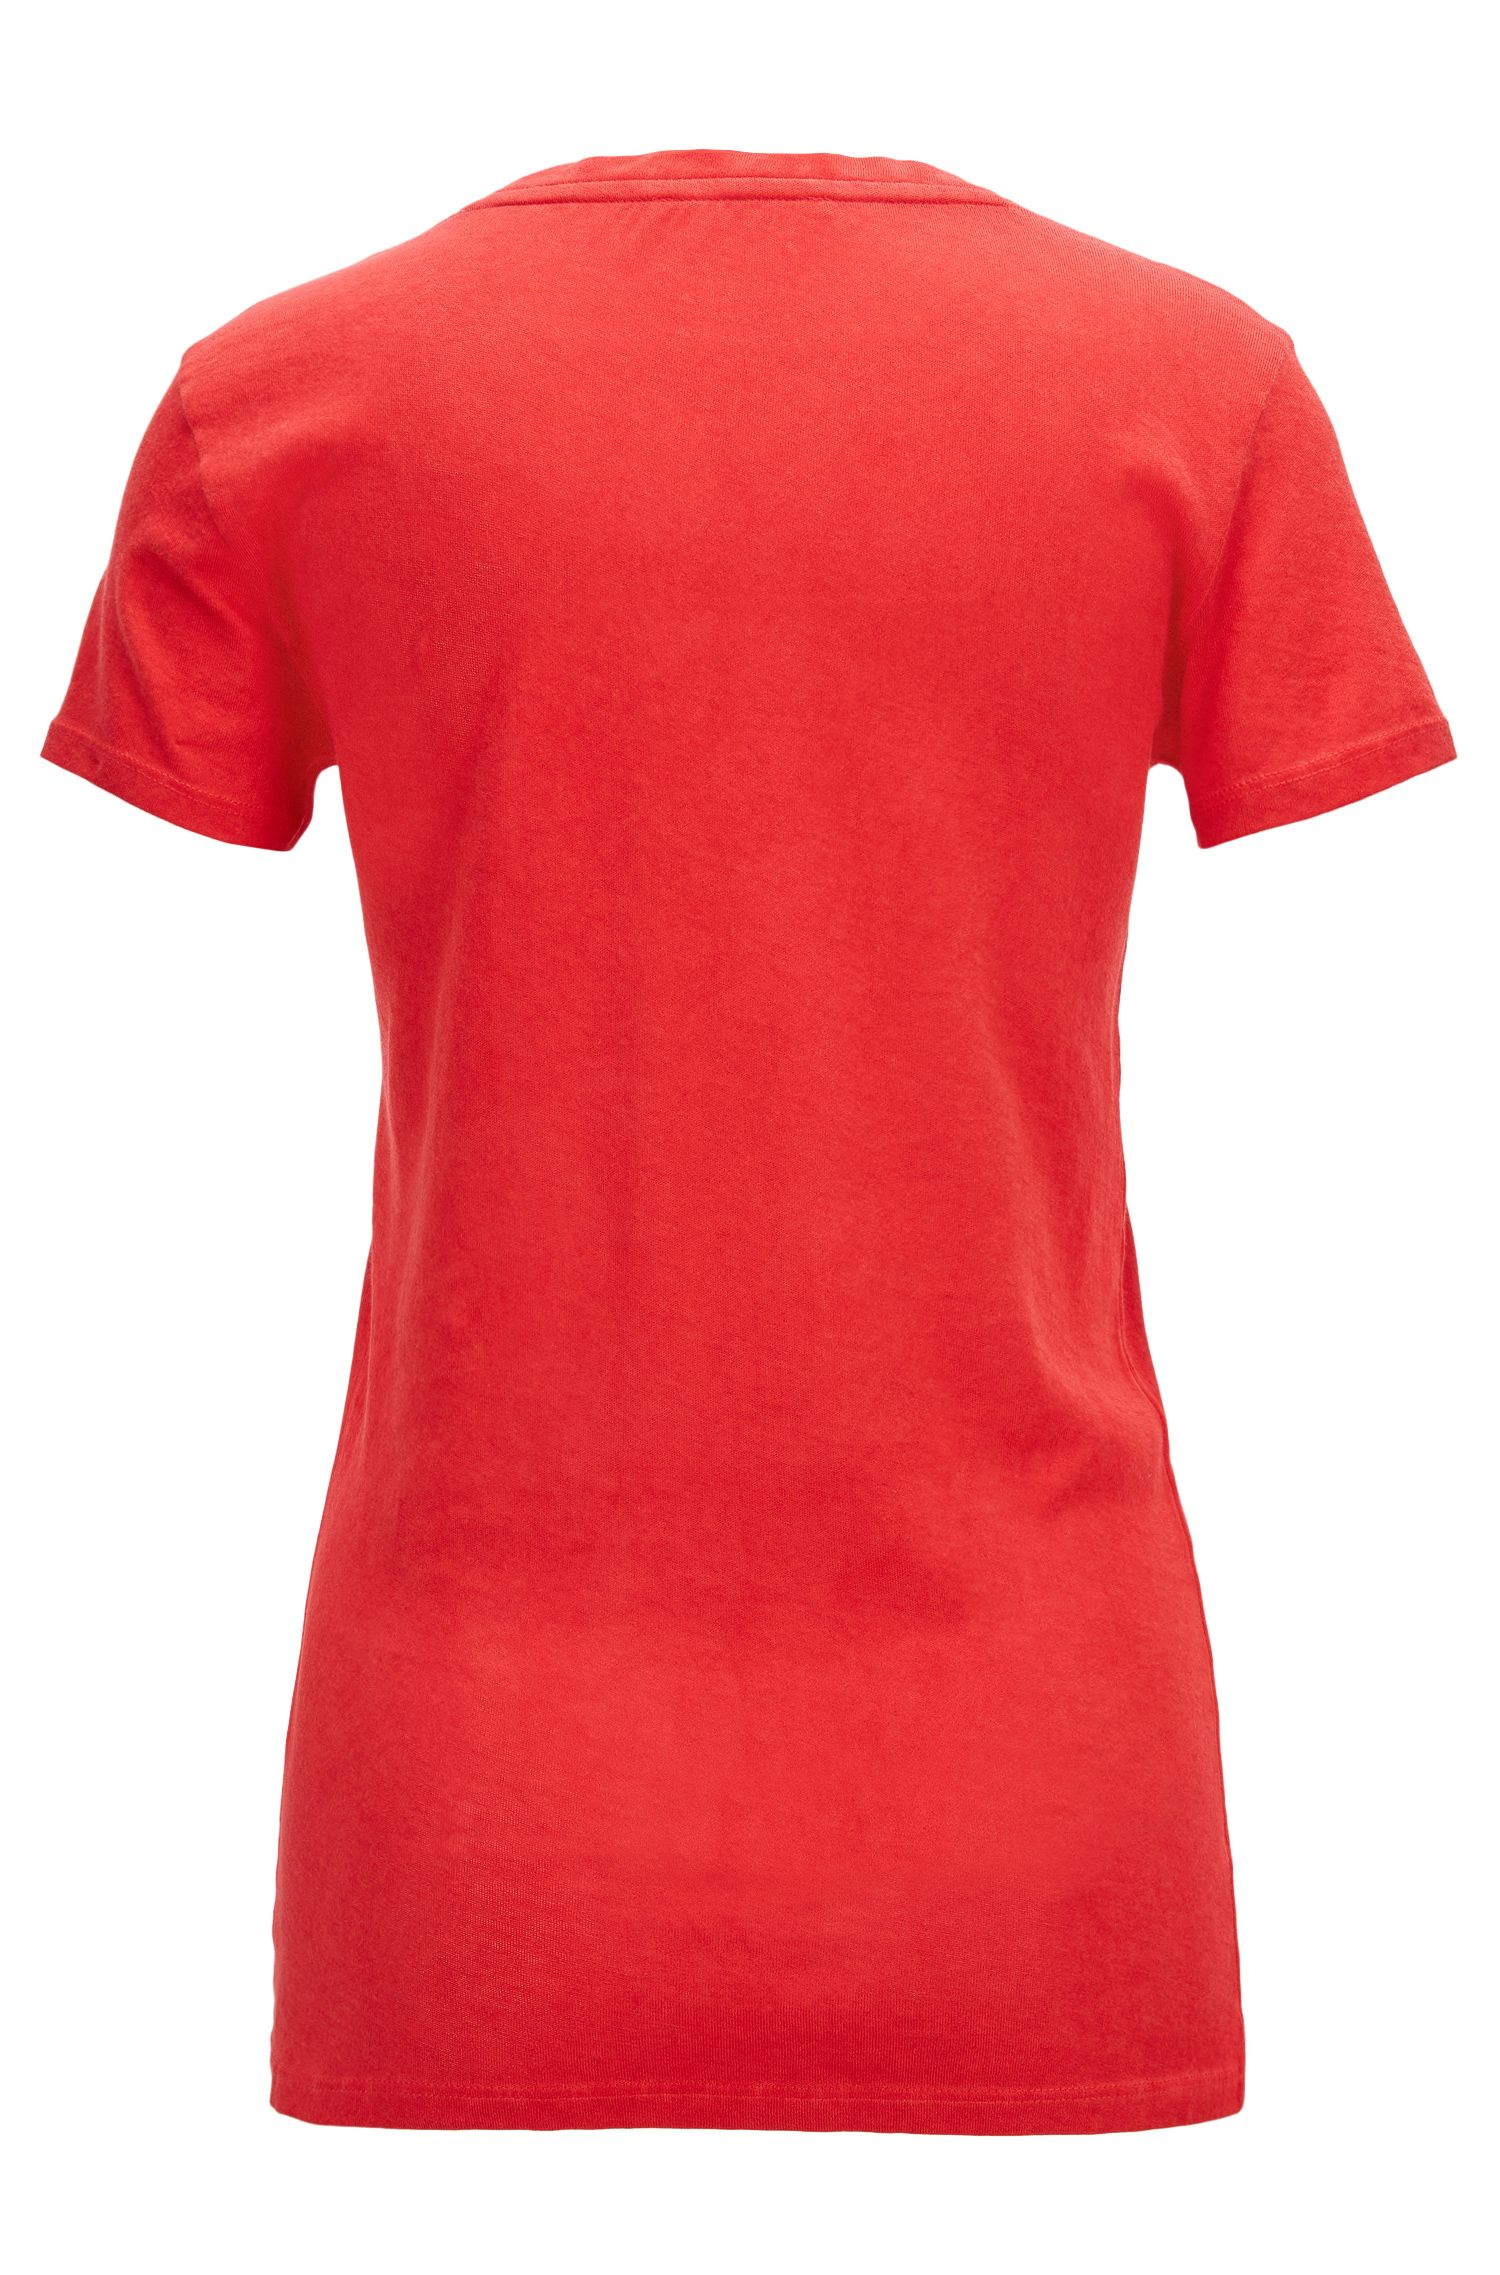 Slim-fit garment-dyed cotton T-shirt